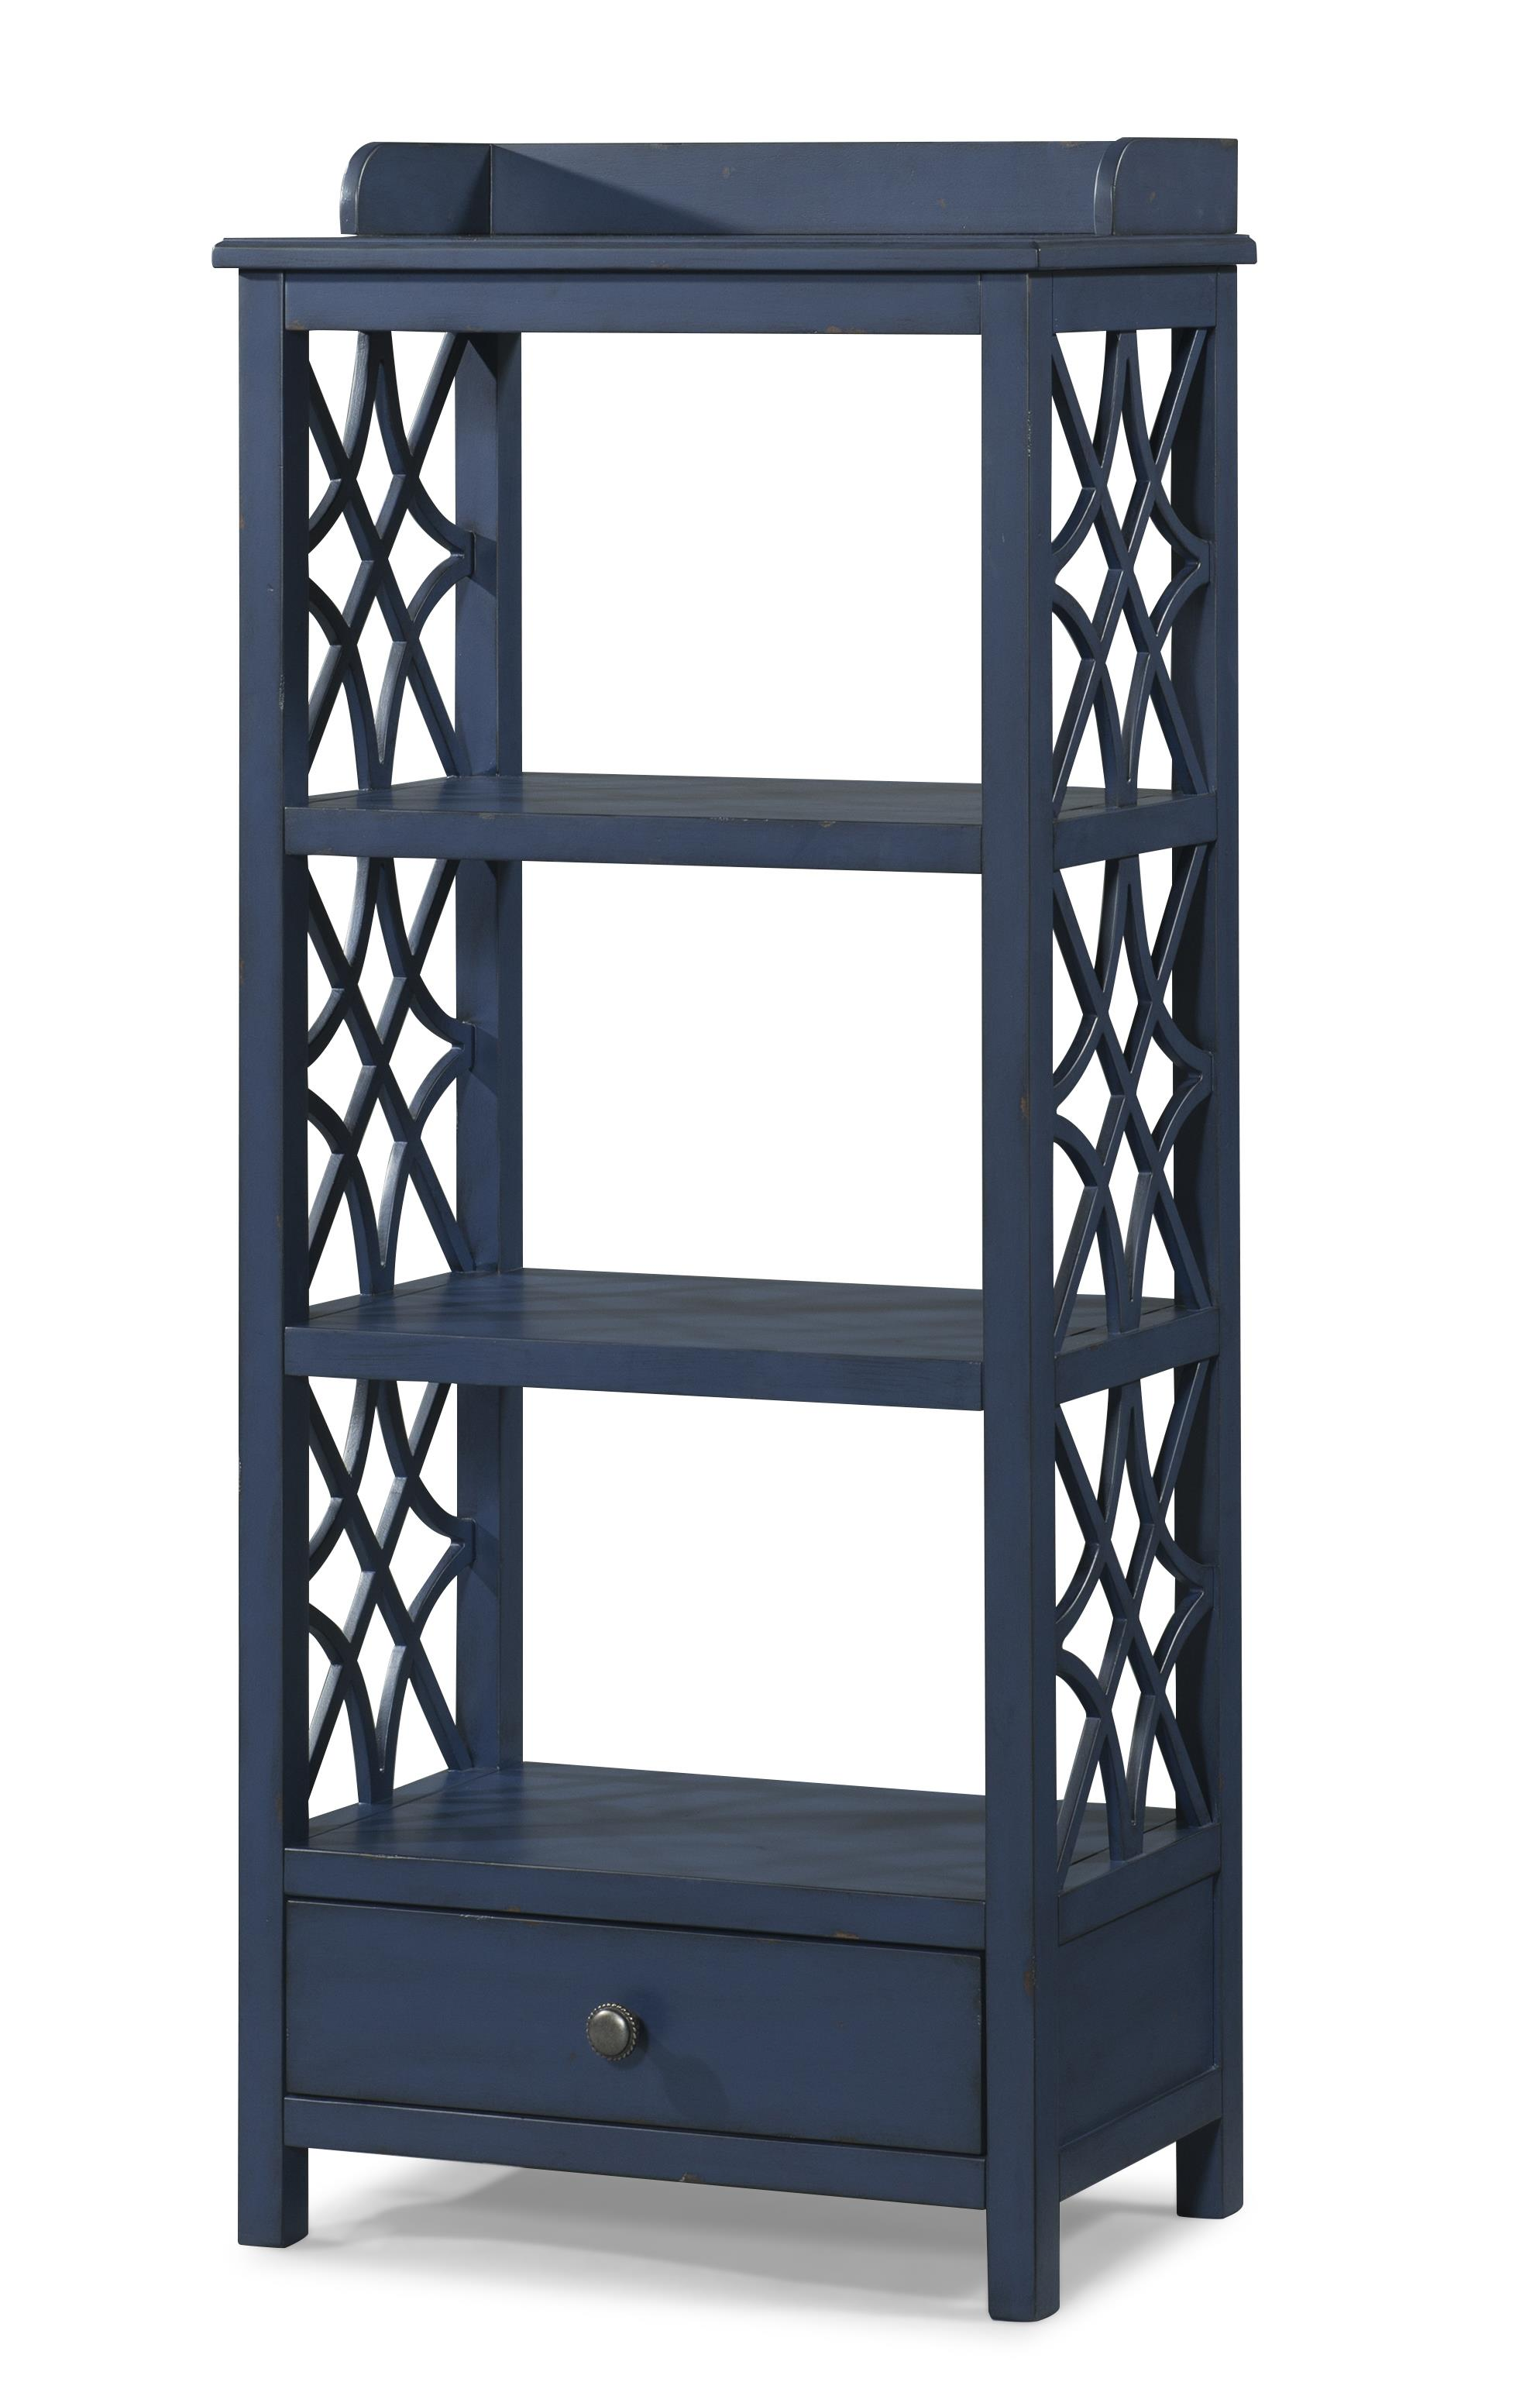 Trisha yearwood home collection by klaussner trisha yearwood home honeysuckle - Etagere cases carrees ...